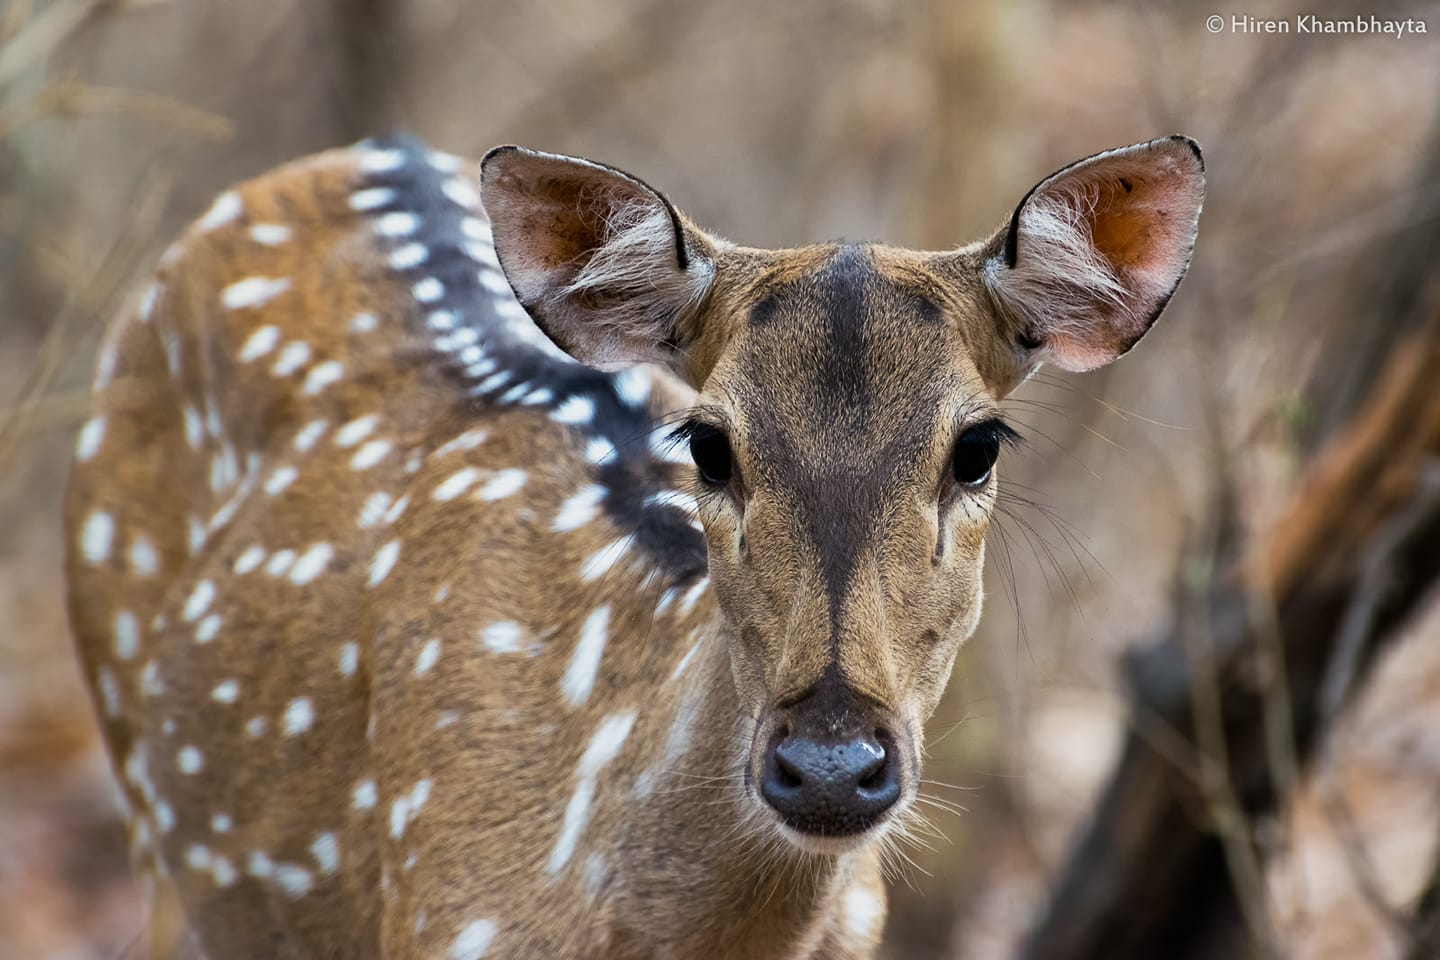 THE LARGE NUMBERS OF NATIVE CHITAL OR CHEETAL ALSO CALLED SPOTTED DEER IN GIR NATIONAL PARK ARE THE PRIMARY PREY OF THE ASIATIC LIONS. IMAGE: HIREN KHAMBHAYTA